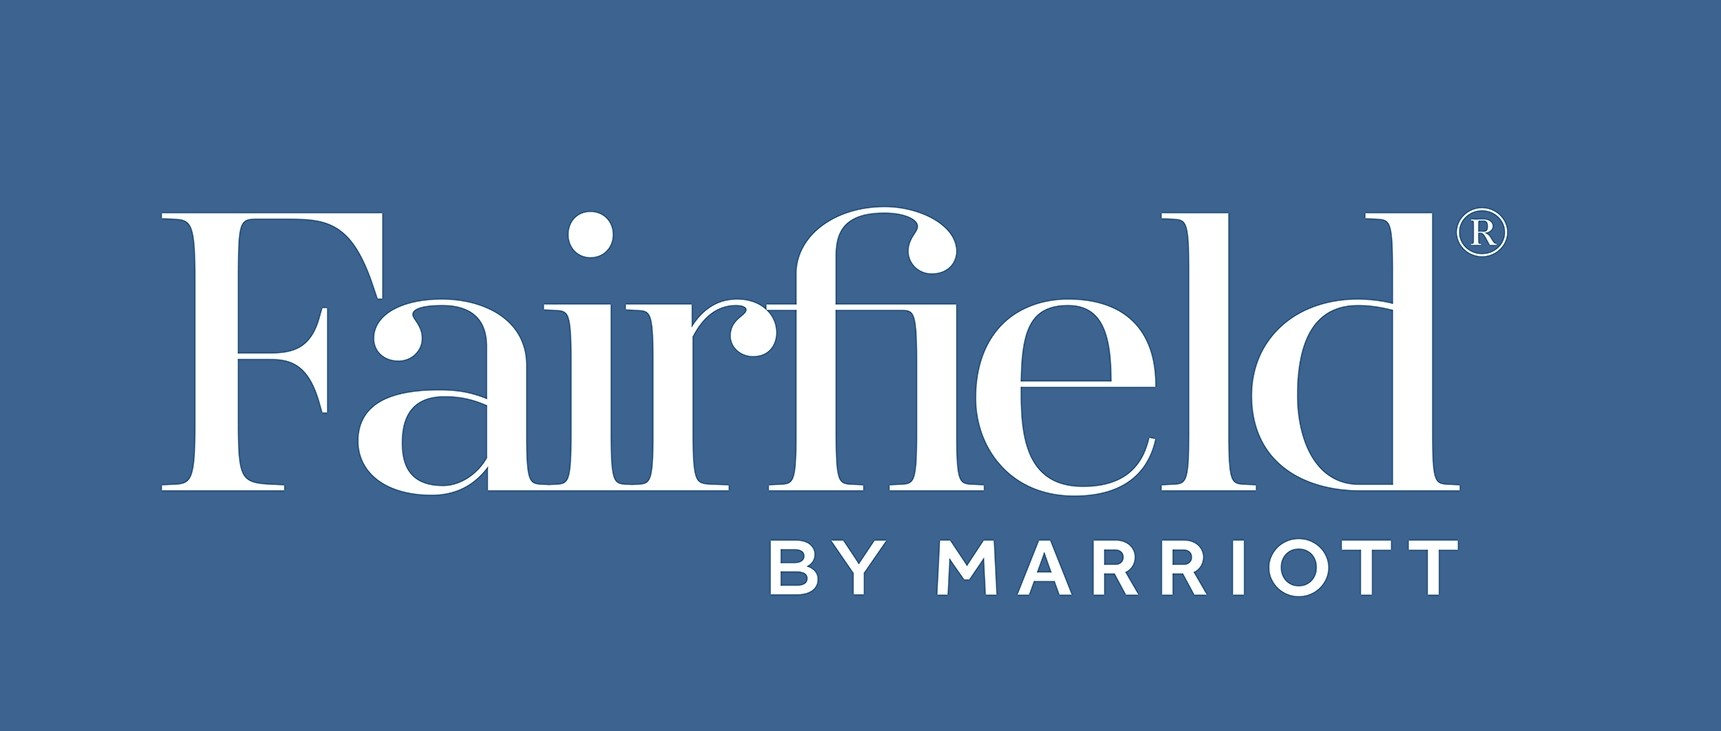 FAIRFIELD MARRIOTT LOGO.jpg